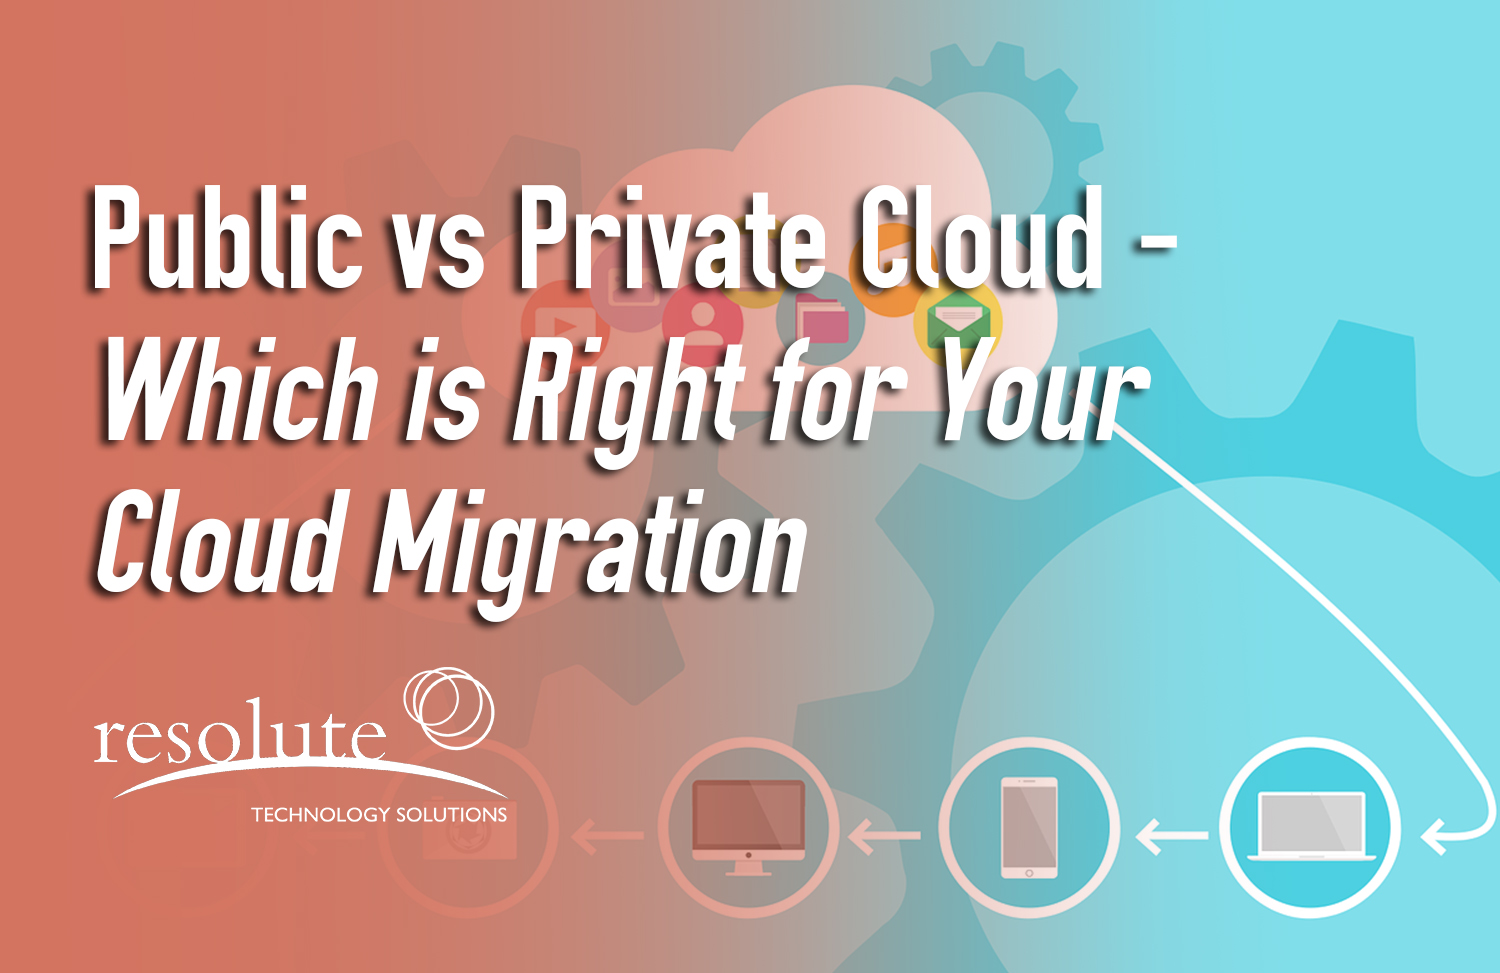 Public vs Private Cloud Migration – Which is Right for You